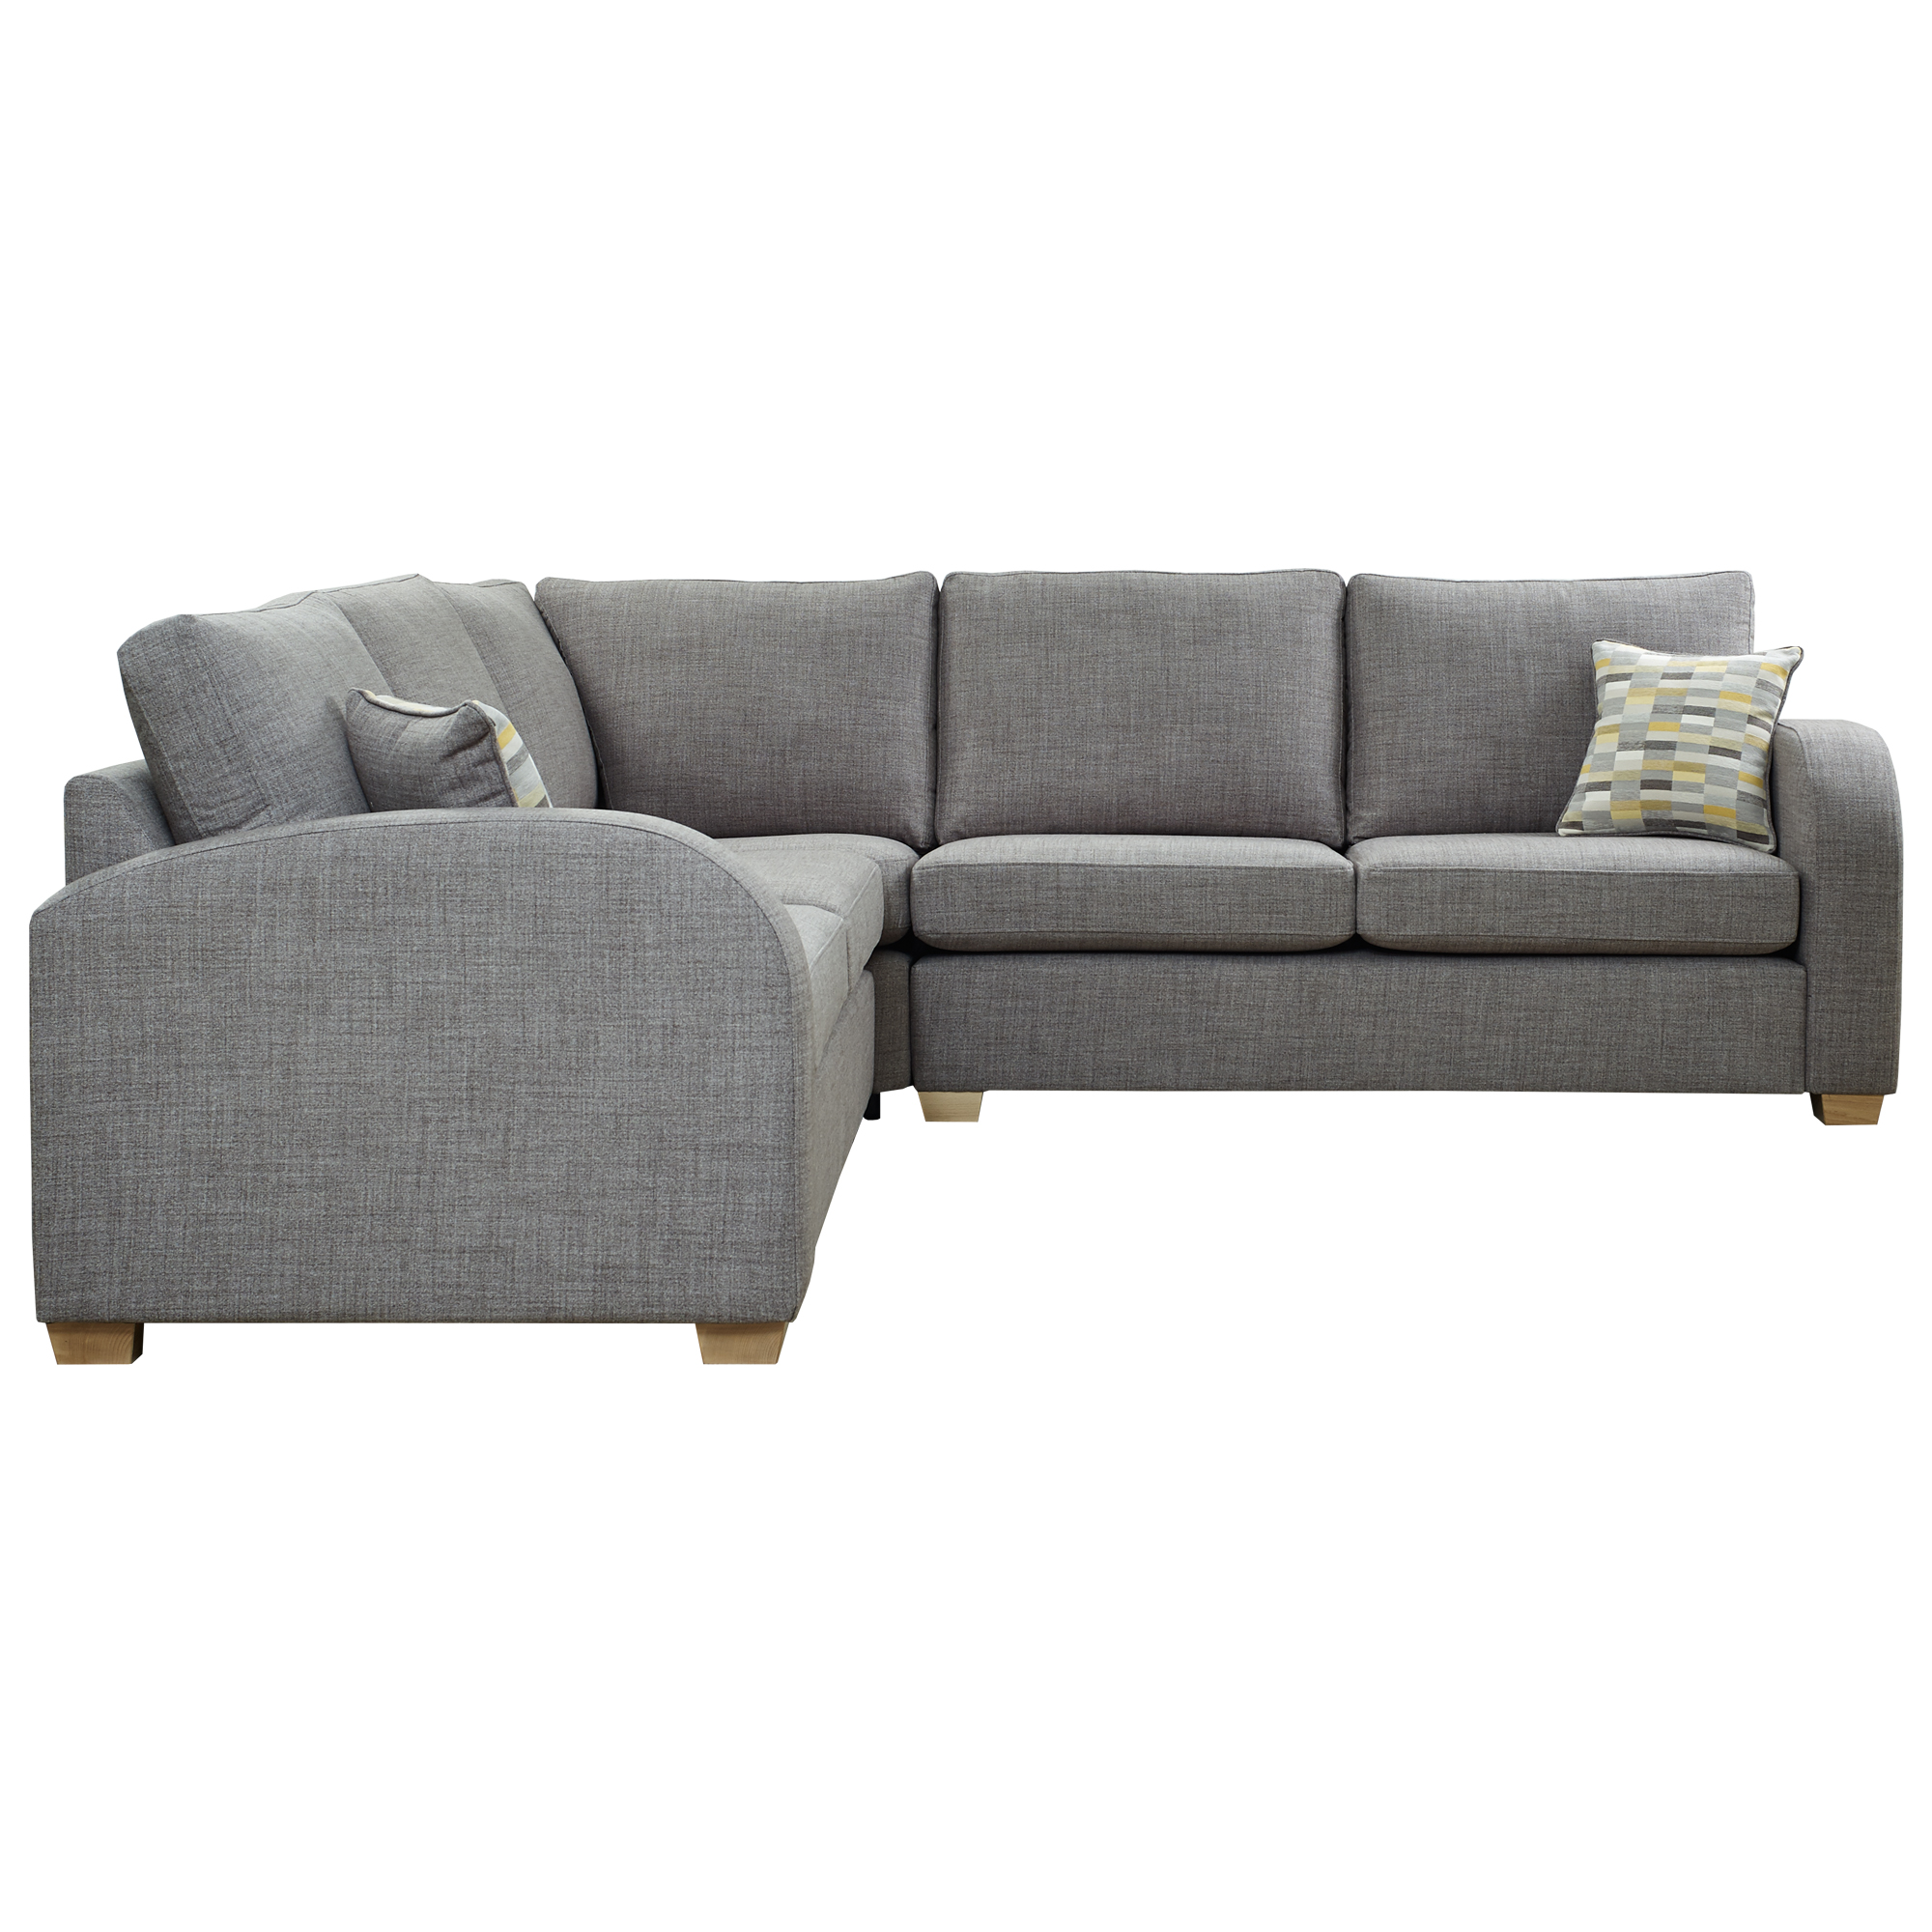 corner sofa bed new york upholstery cost sydney front with 2 scatters